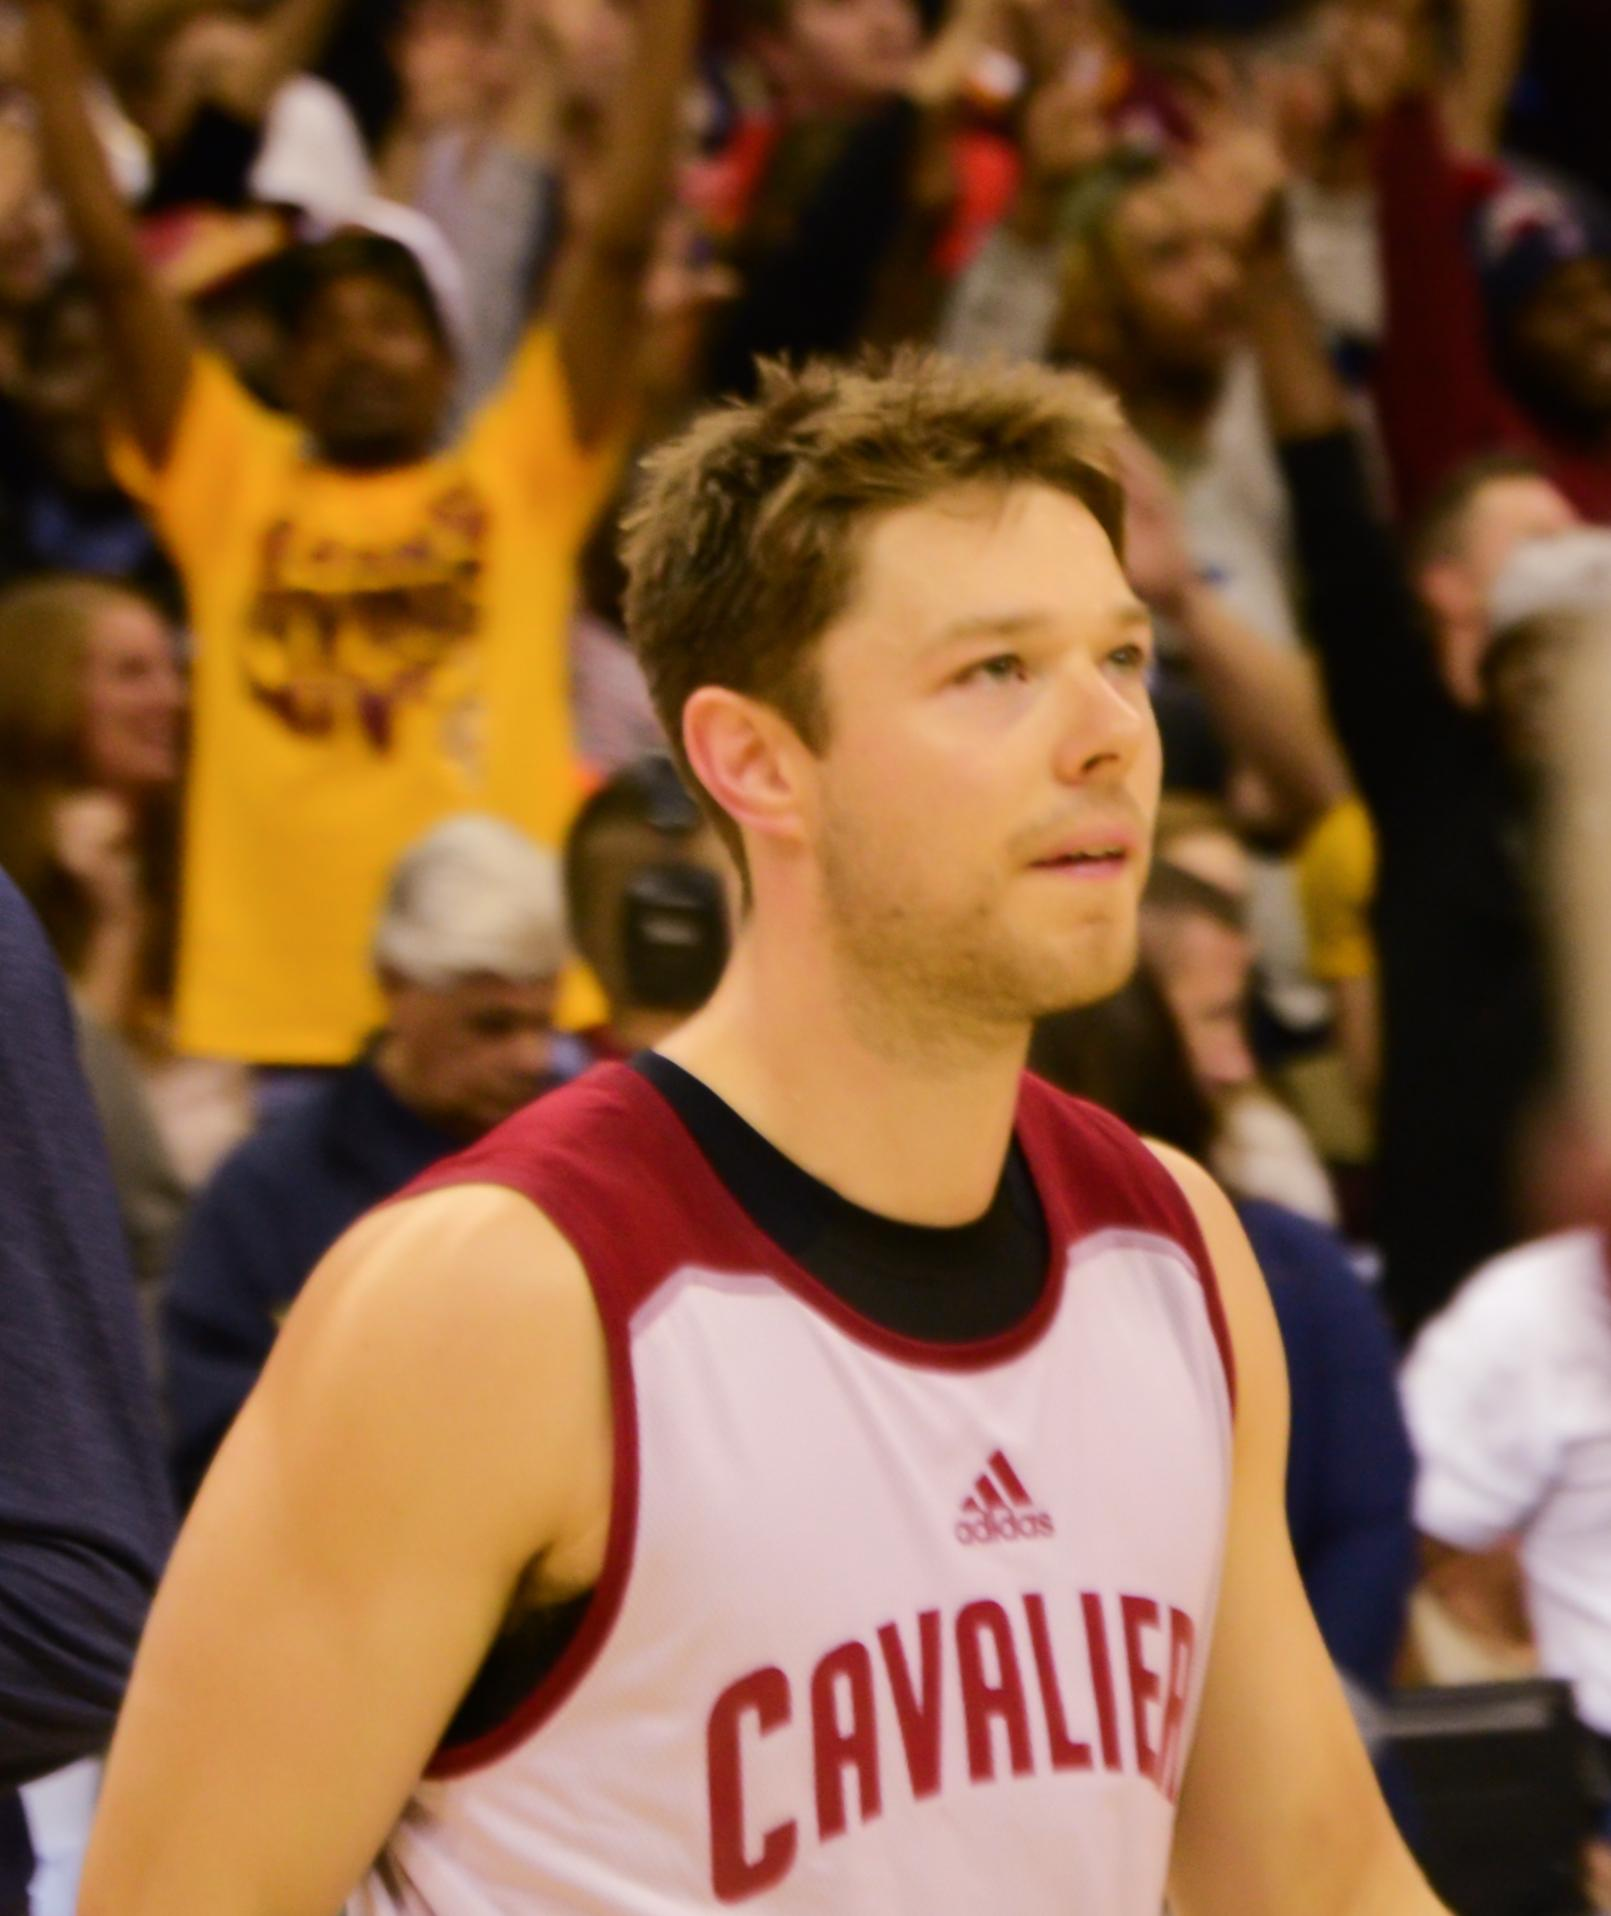 Amico: Are Cavs and Dunleavy a match?